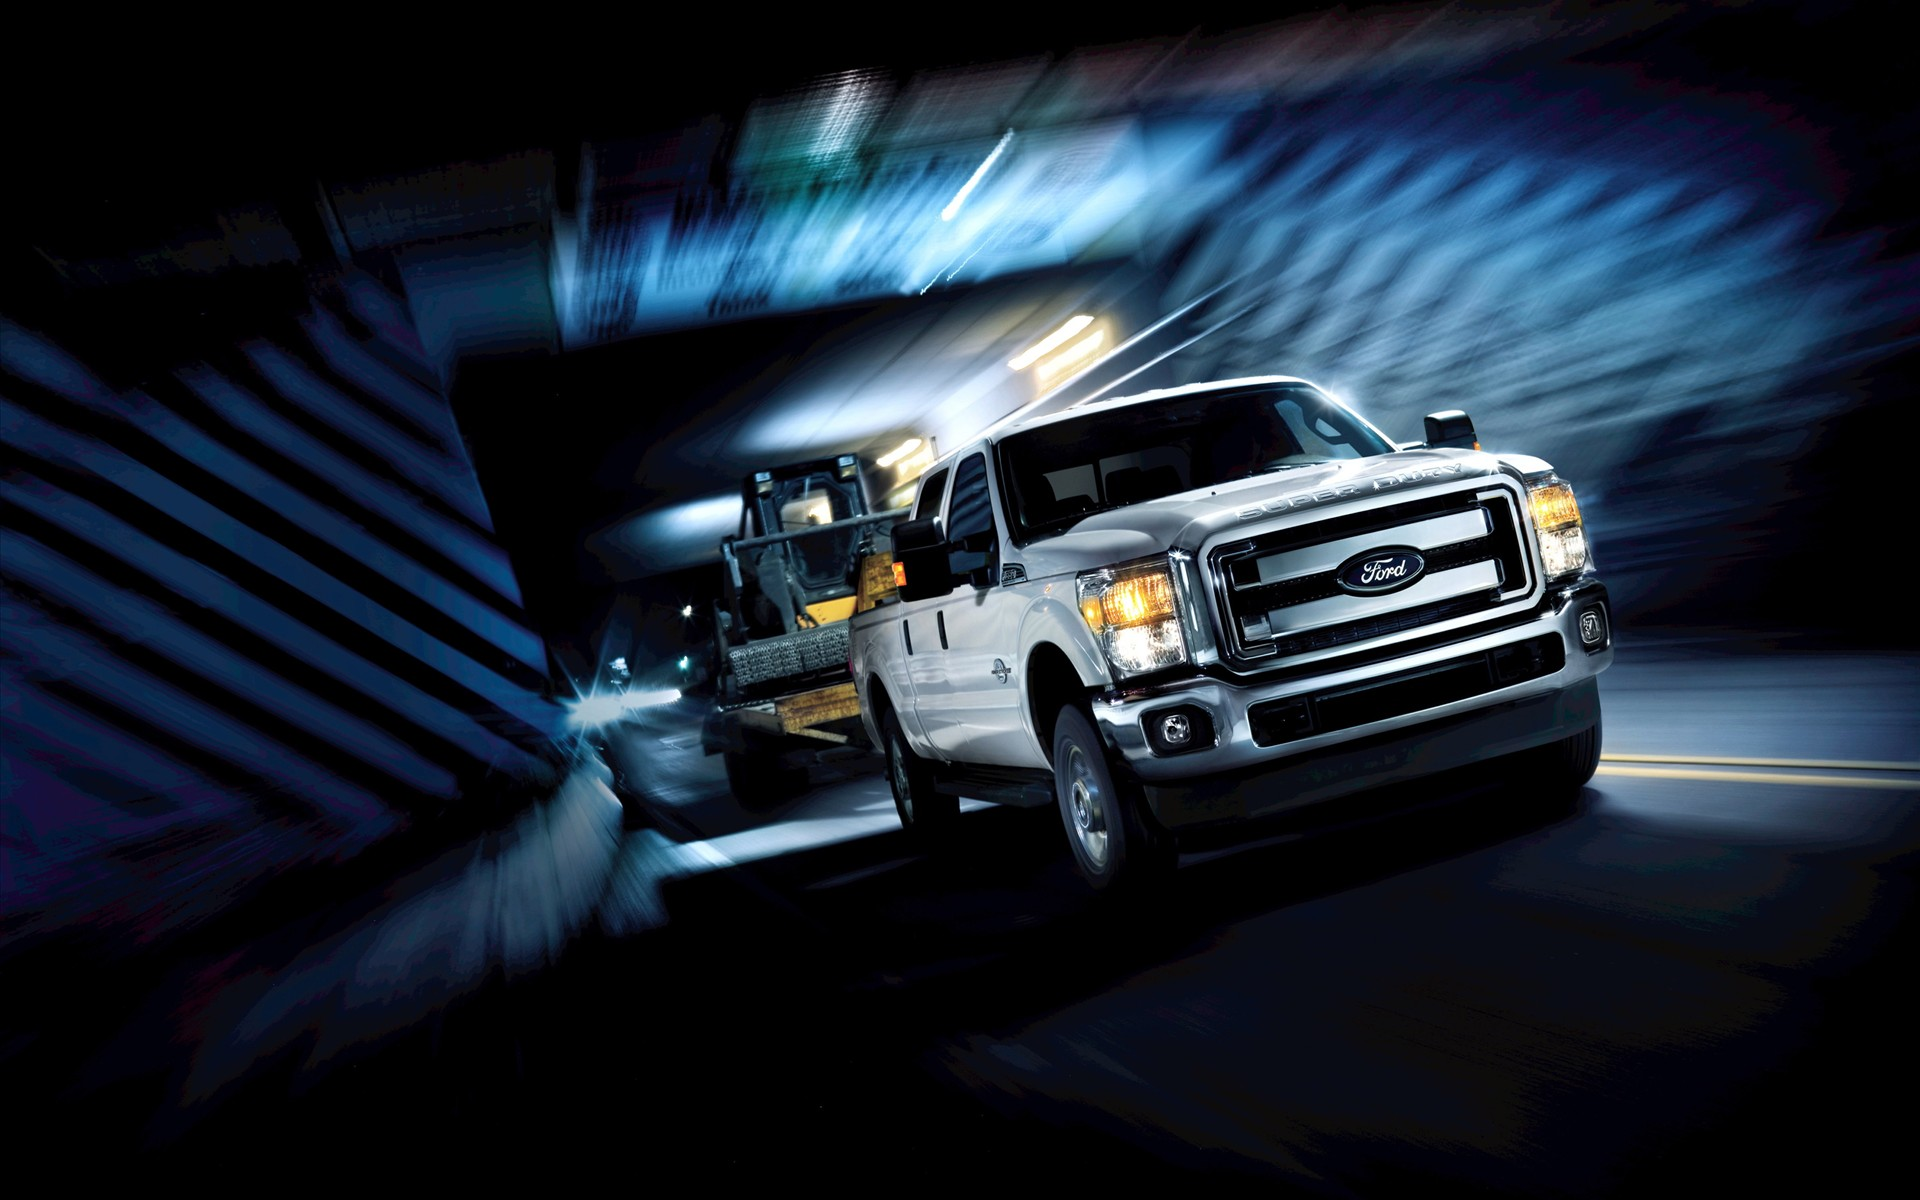 2011 Ford Super Duty Wallpapers HD Wallpapers 1920x1200